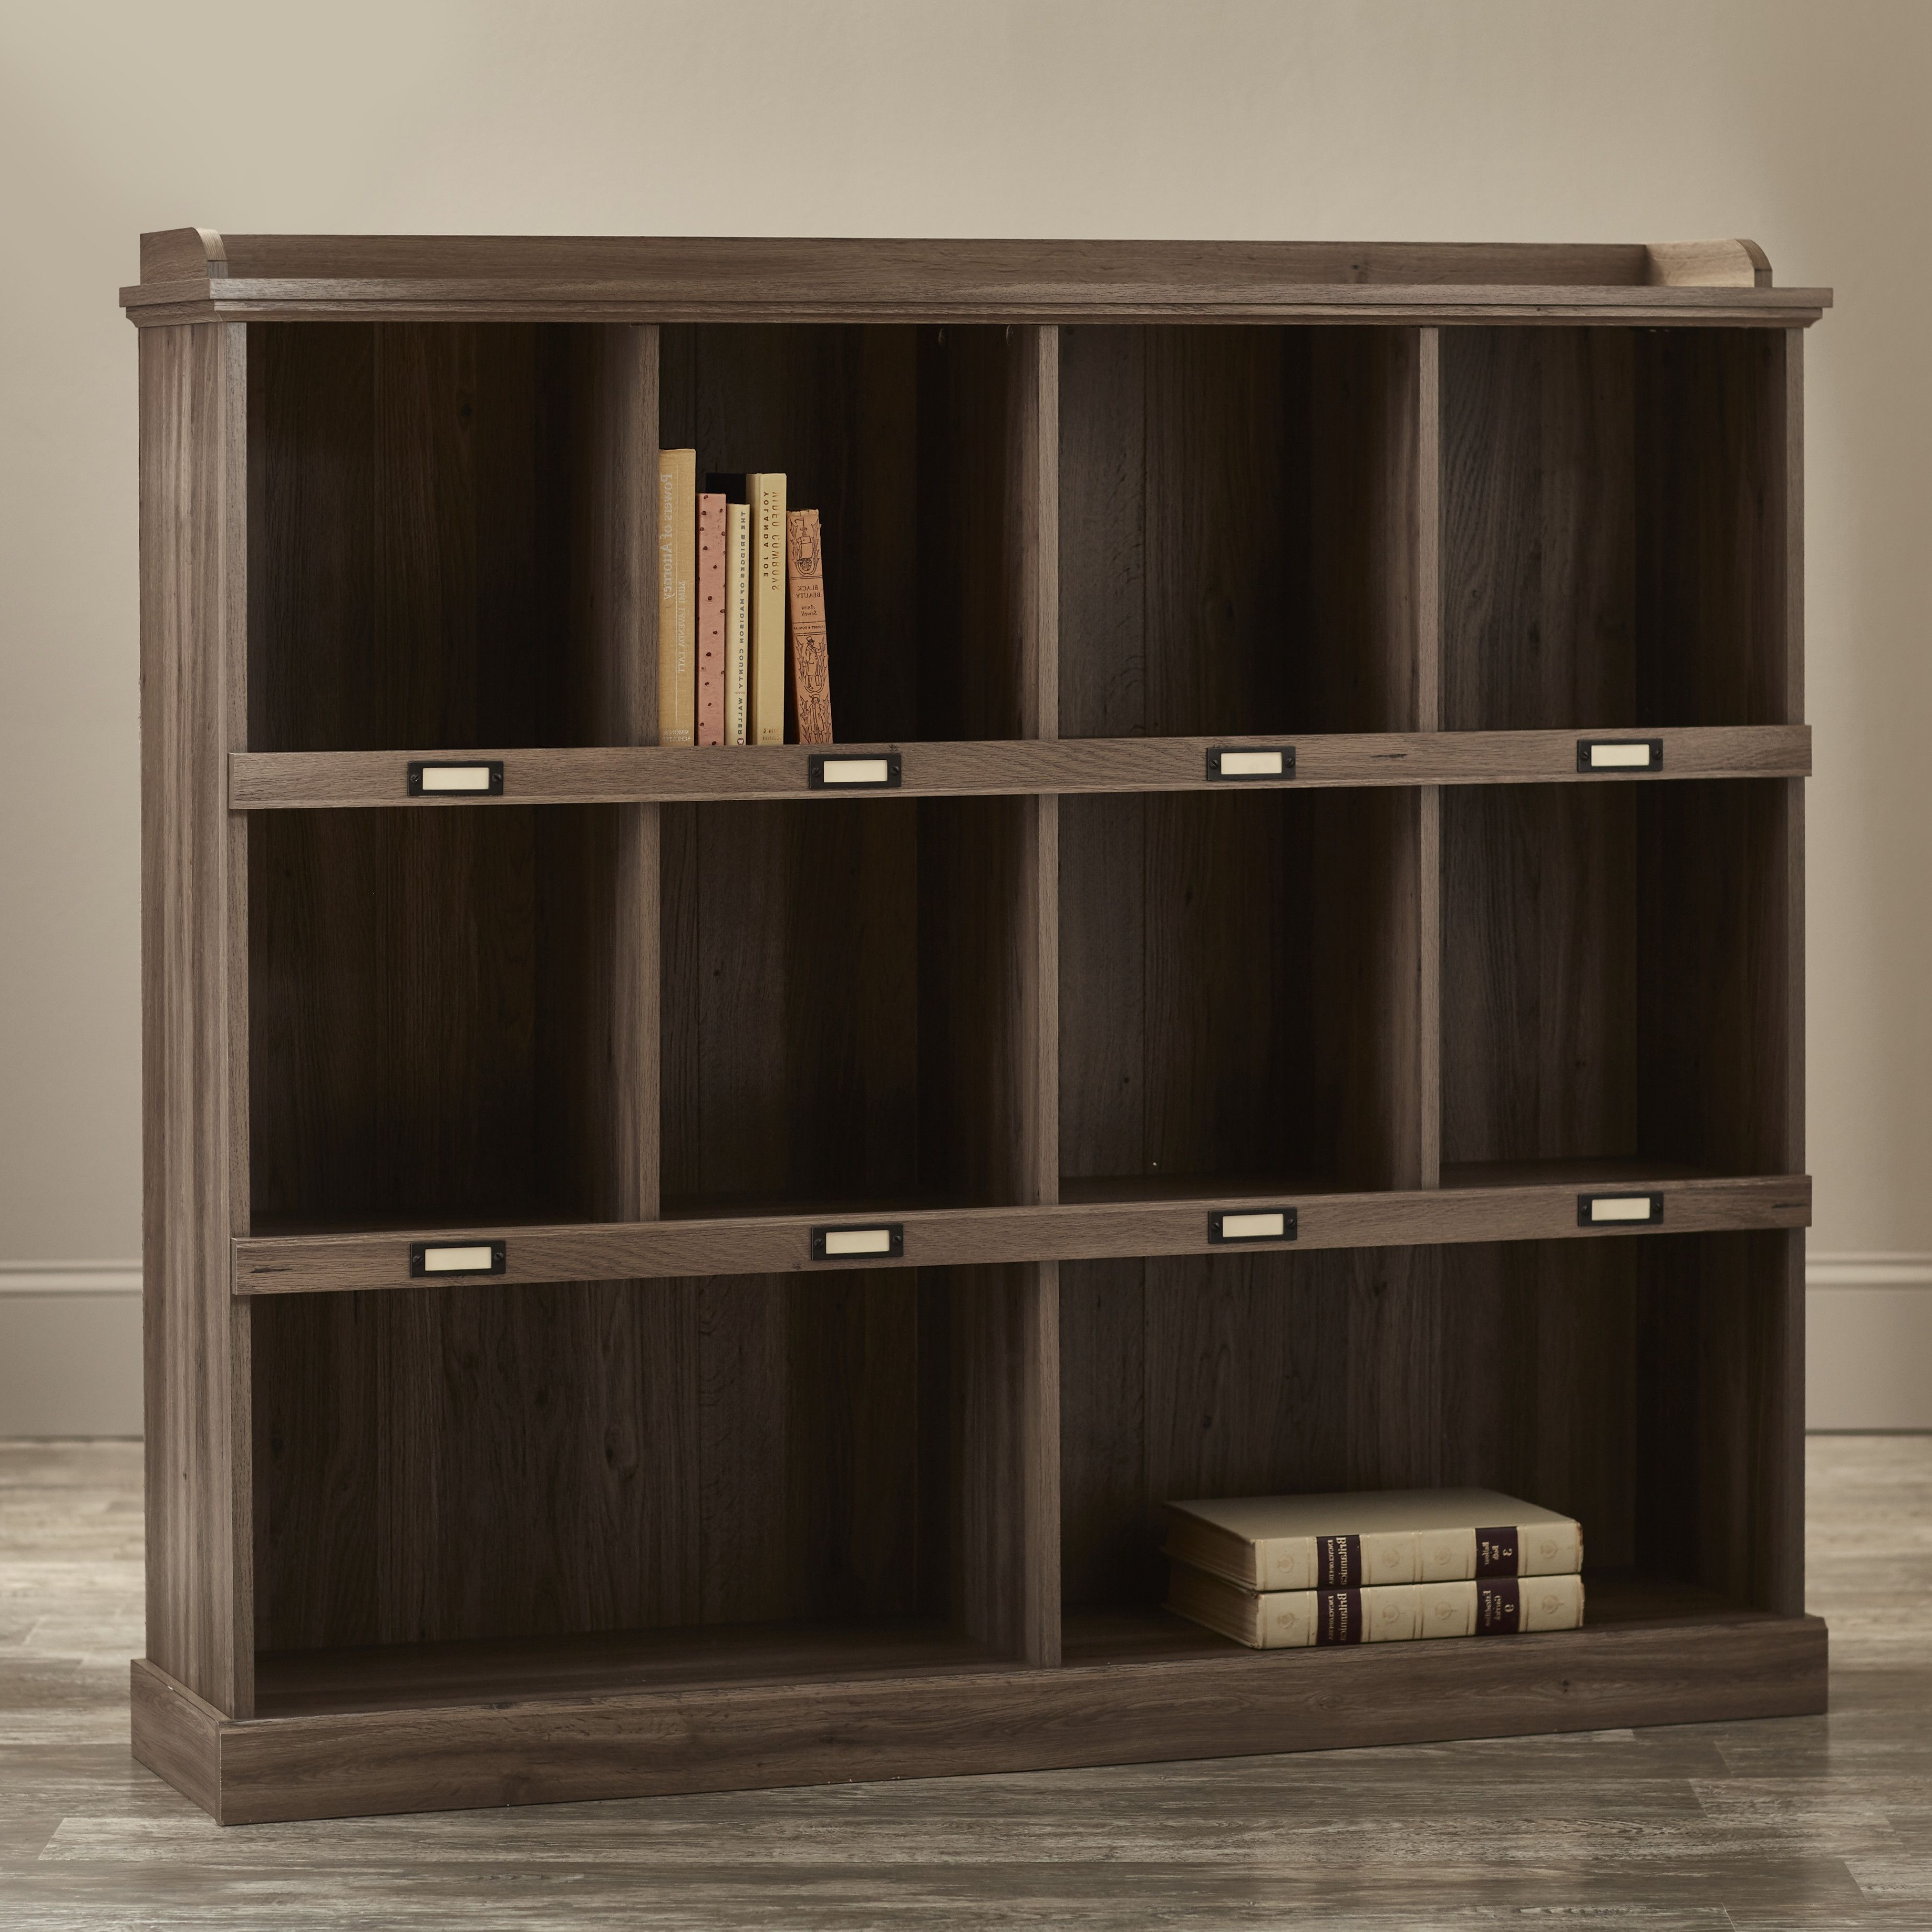 Widely Used Bowerbank Standard Bookcase (View 20 of 20)